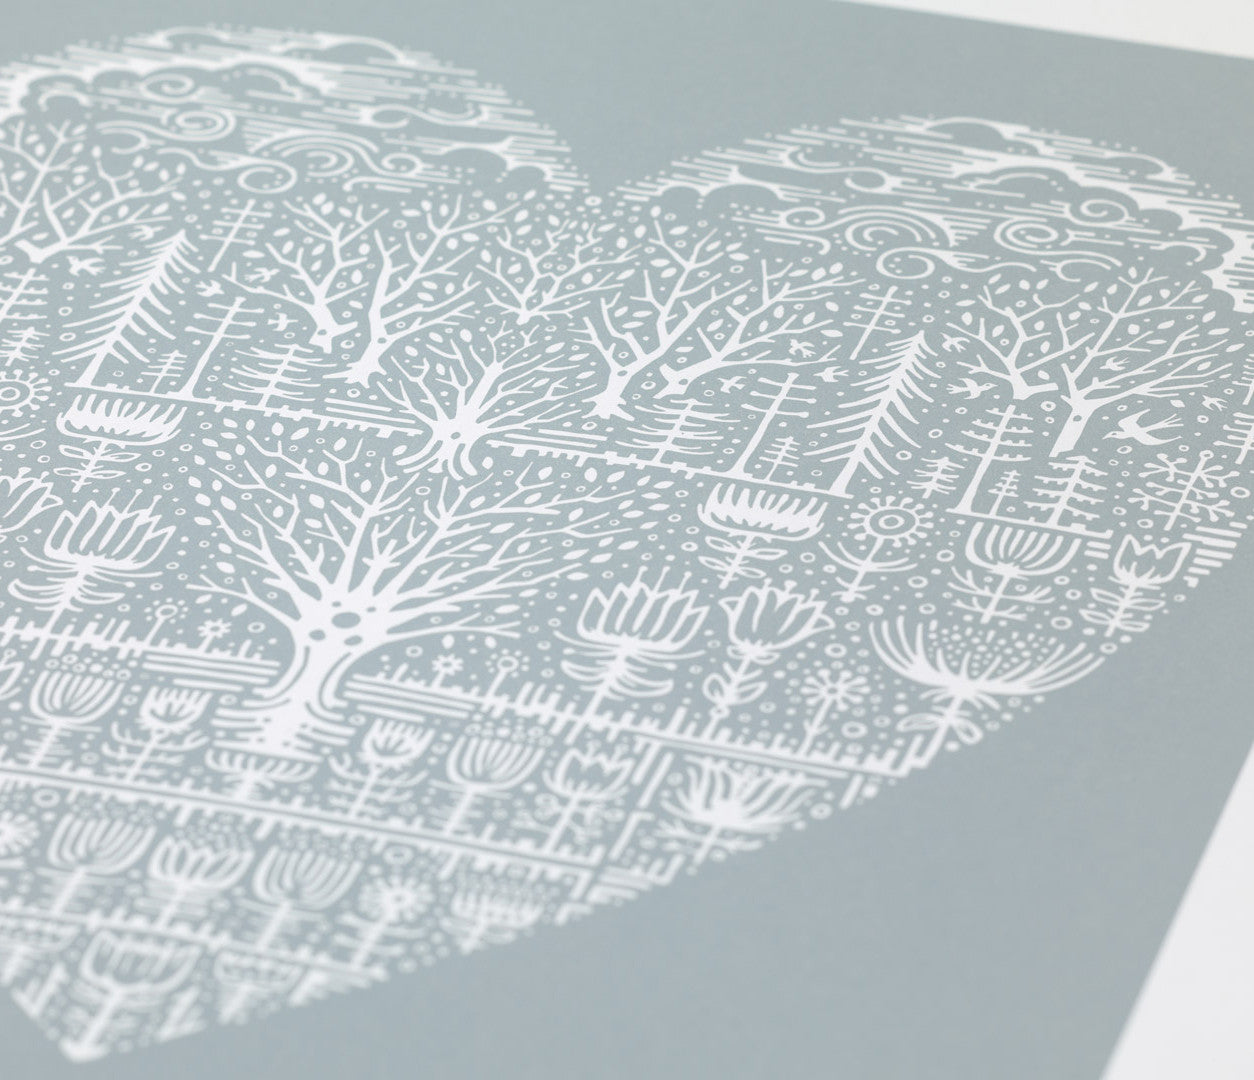 'Wild Wood' Art Print in Warm Grey